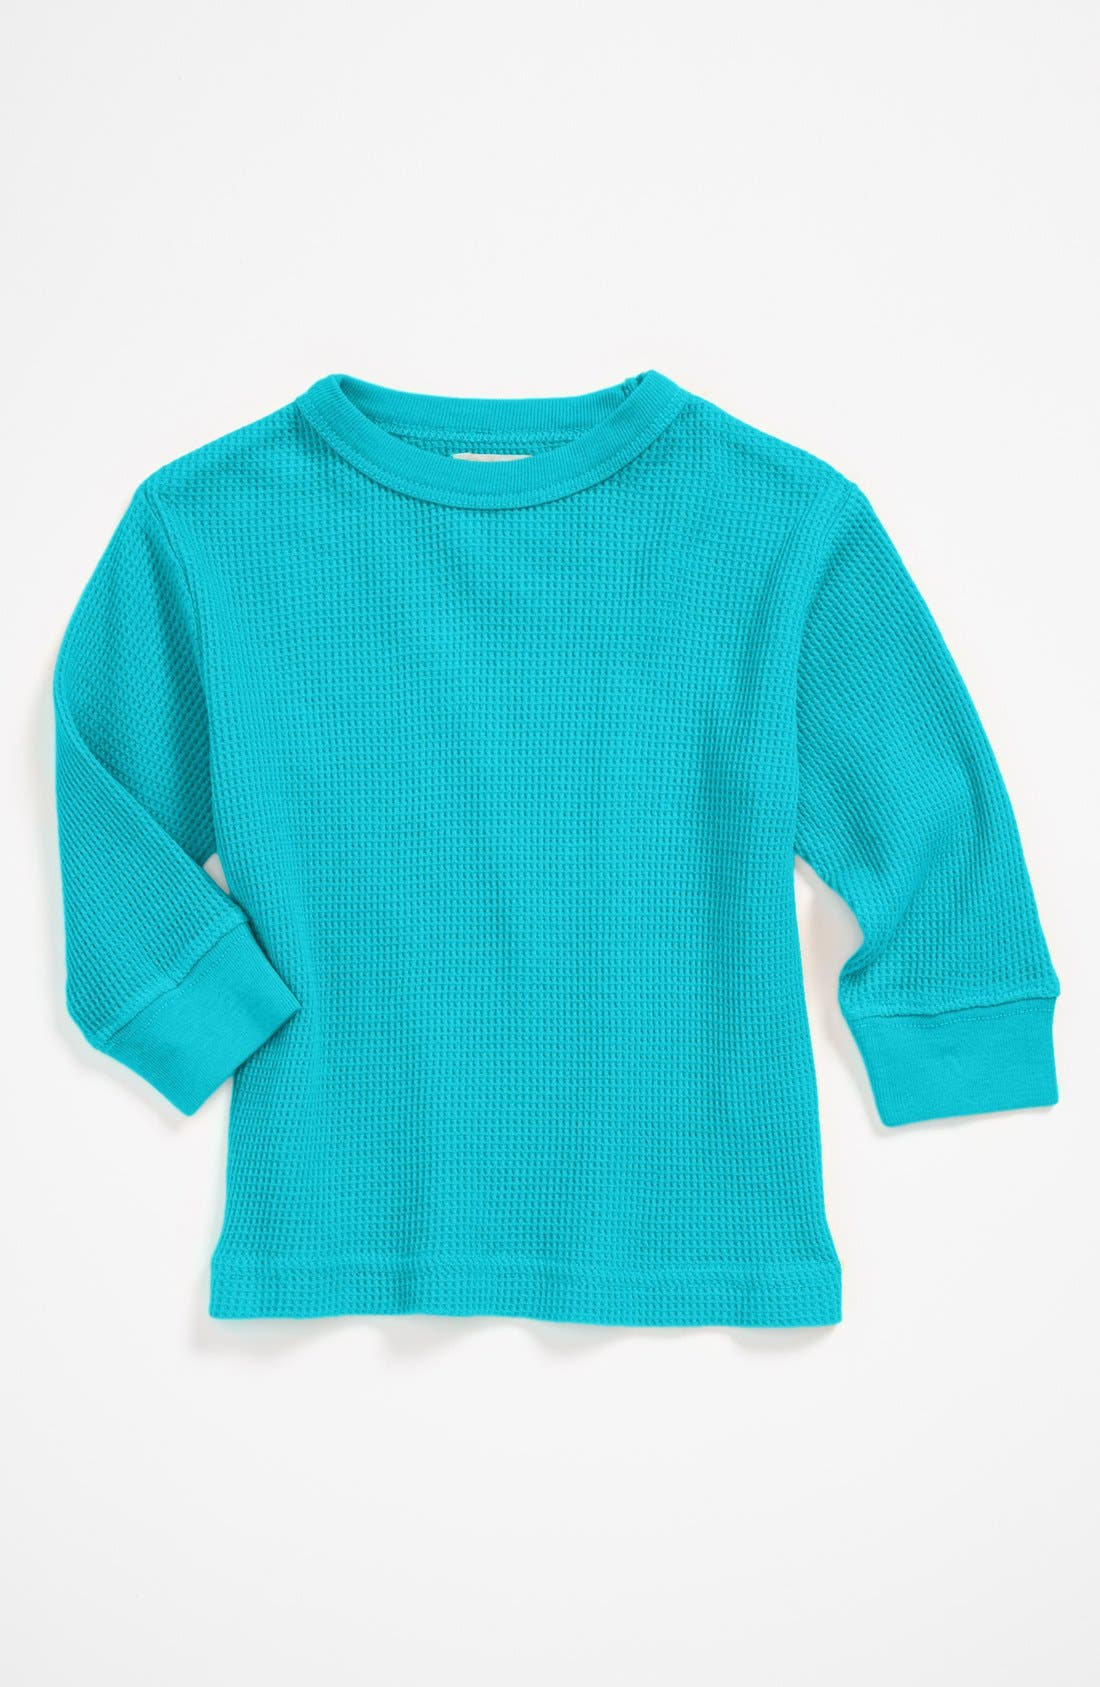 Alternate Image 1 Selected - Peek Layering Thermal Shirt (Baby Boys)